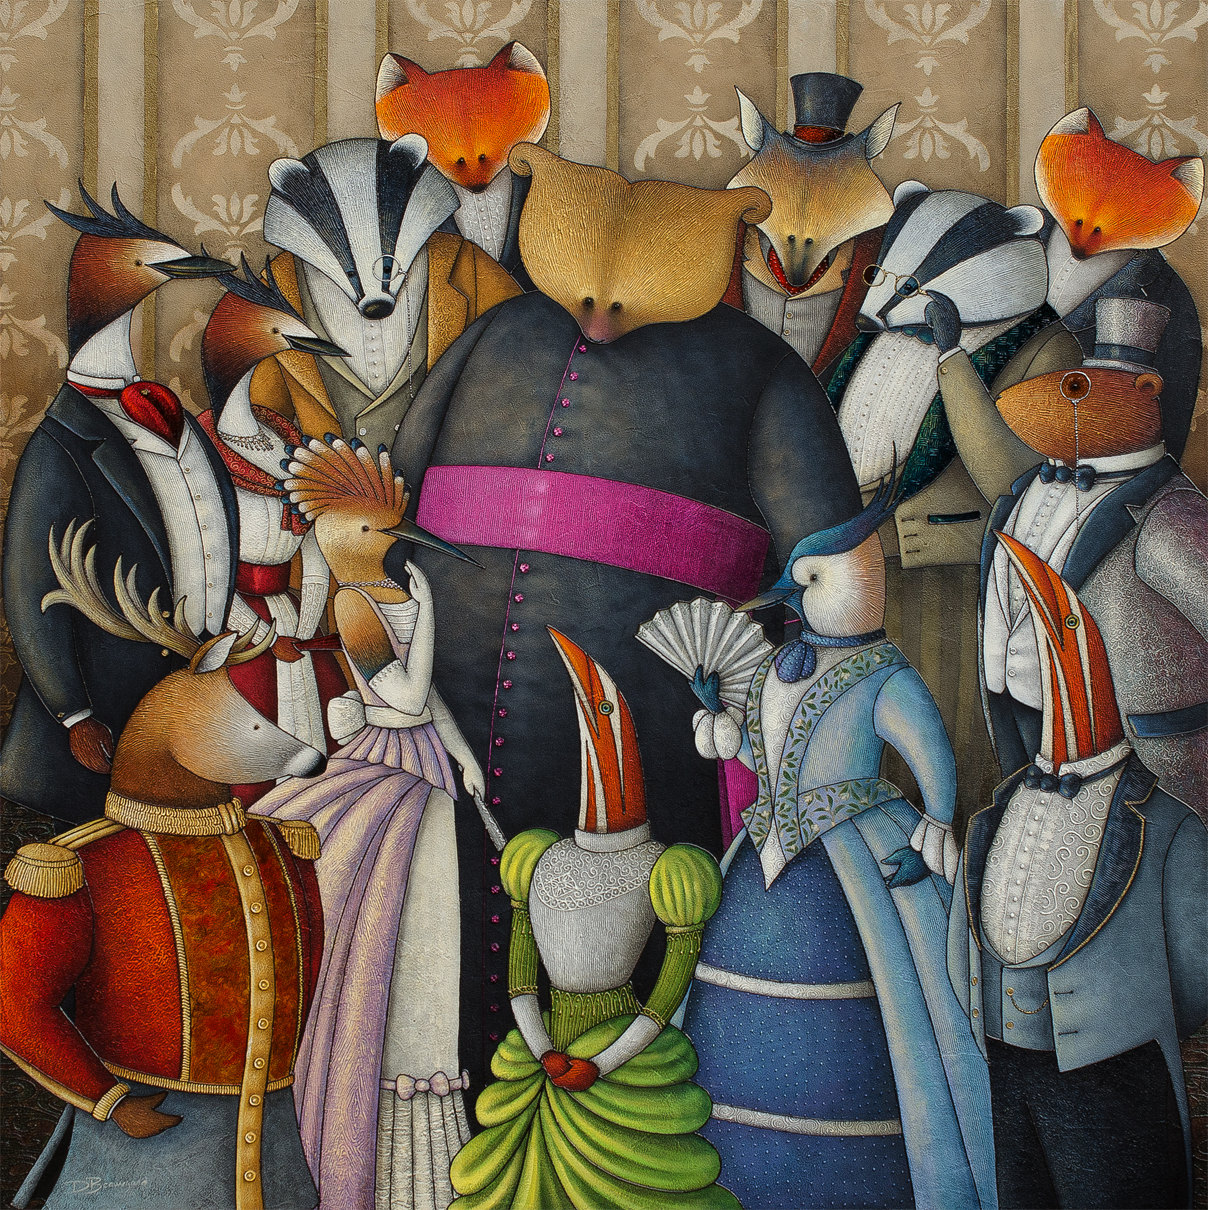 Allegorical painting depicting Curé Labelle as a bear in a cassock. He is surrounded by a colourfully dressed cast of characters: fox, weasel, deer, woodcock, magpie, etc.